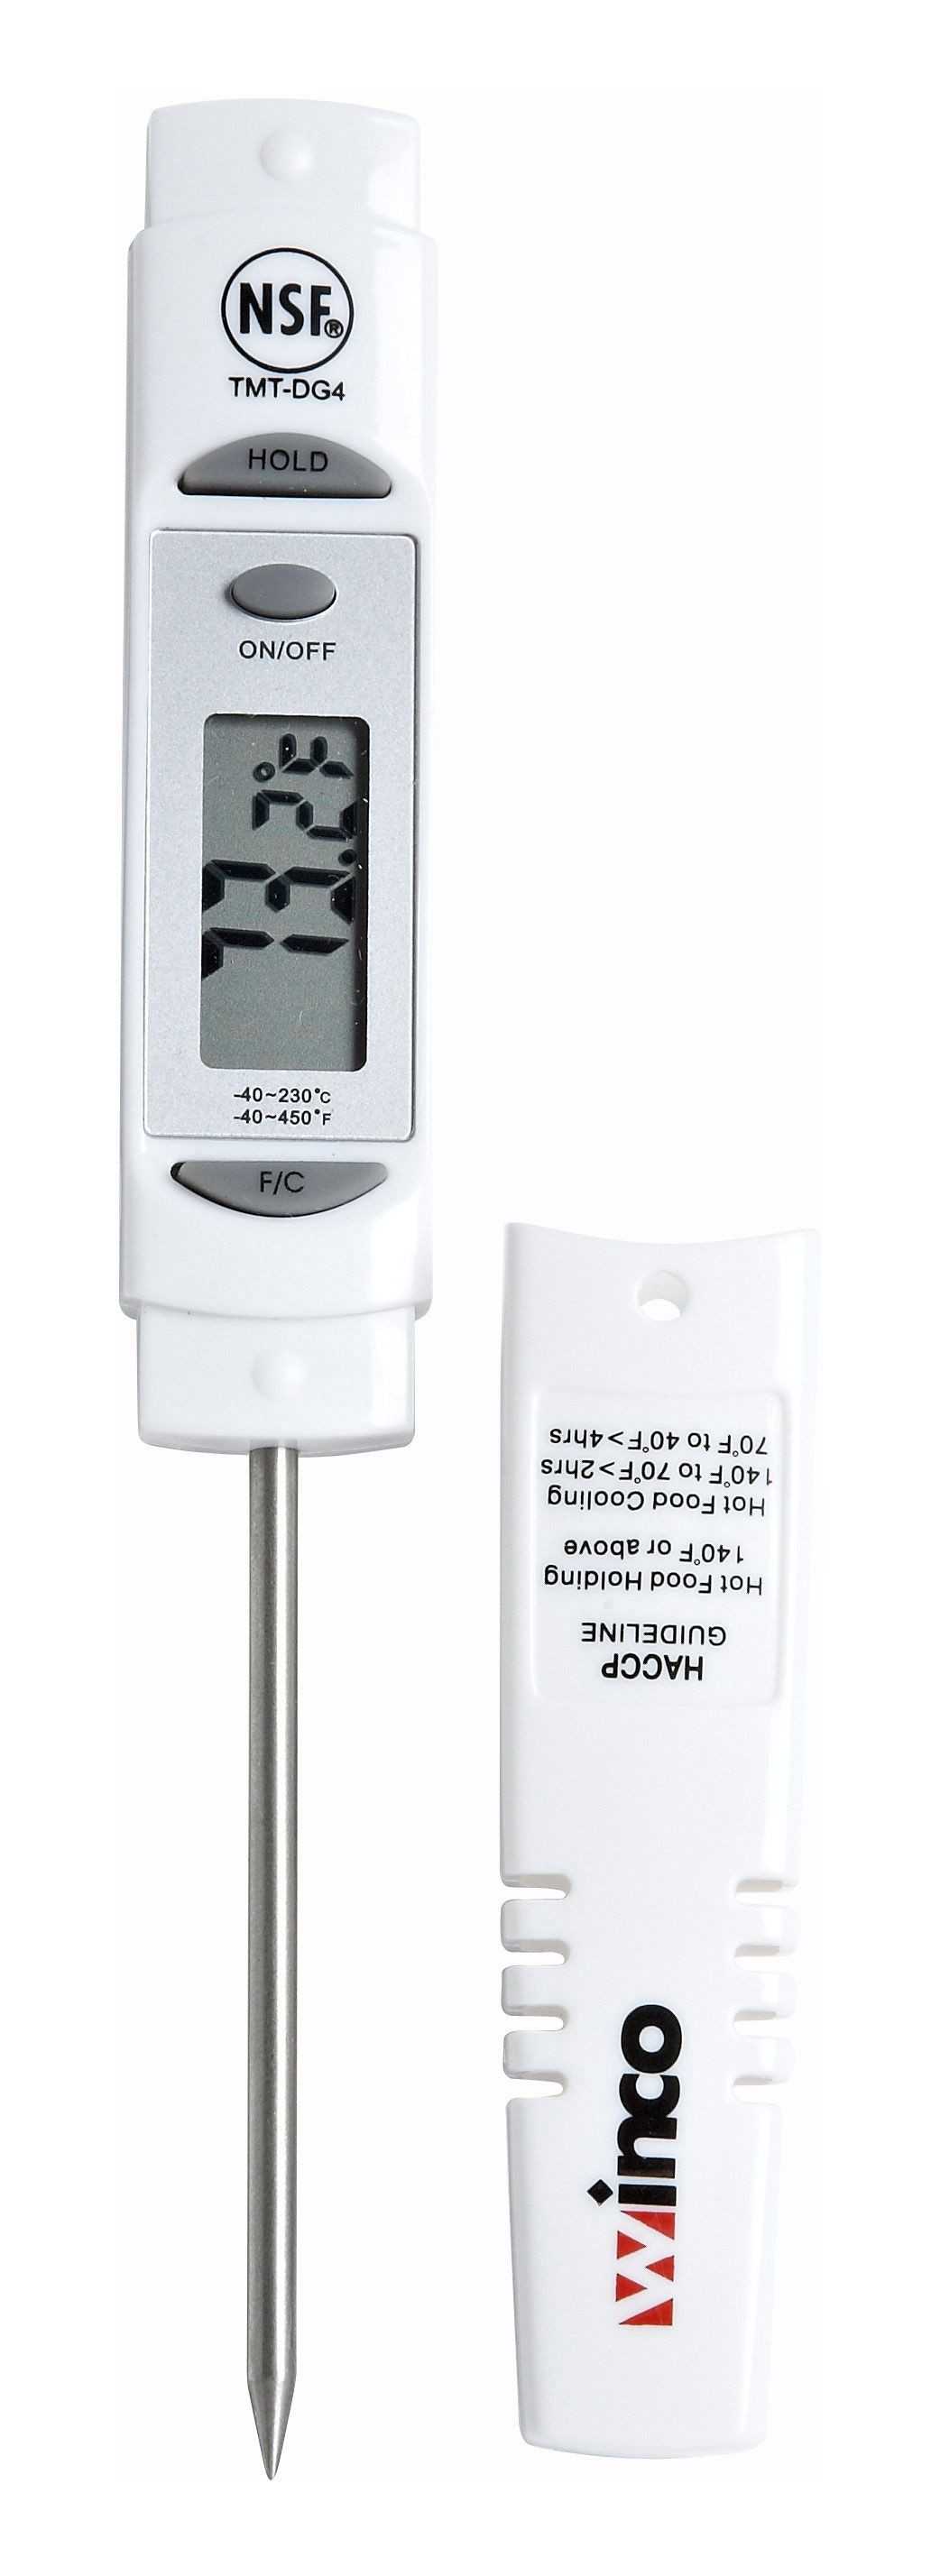 Winco TMT-DG4 Digital Instant Read Thermometer